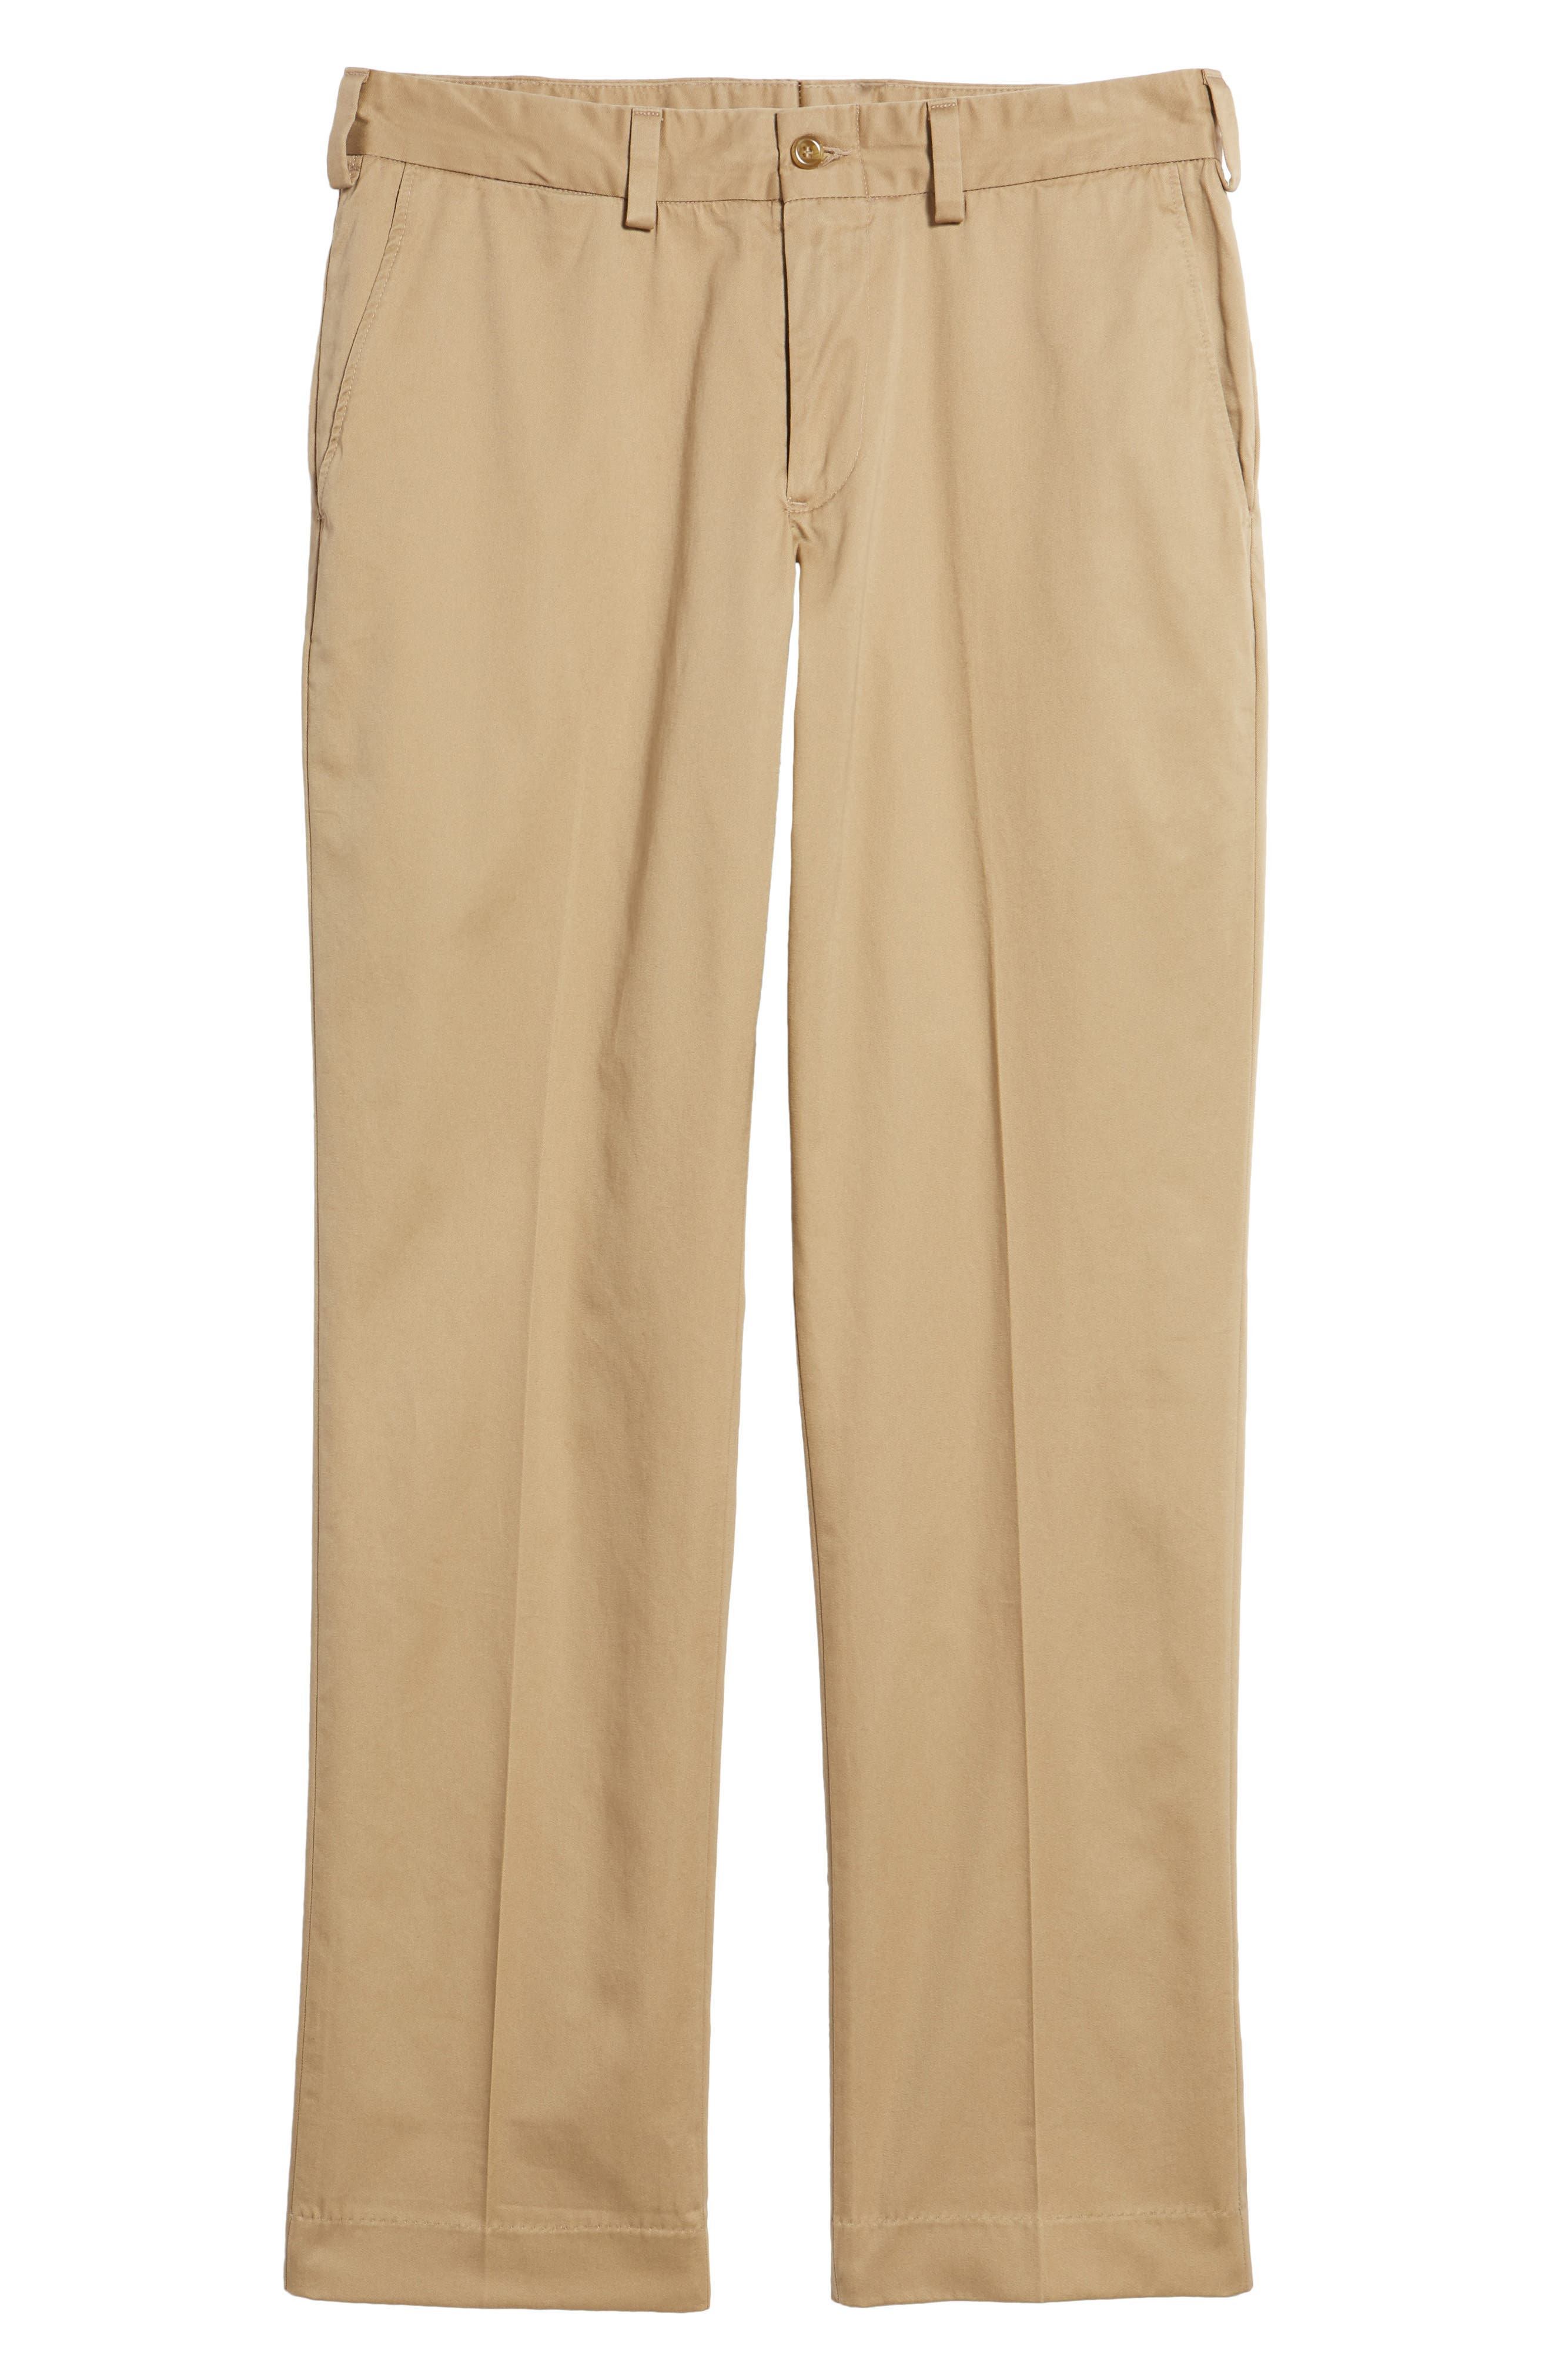 Straight Fit Chamois Cloth Pants,                             Alternate thumbnail 6, color,                             Camel